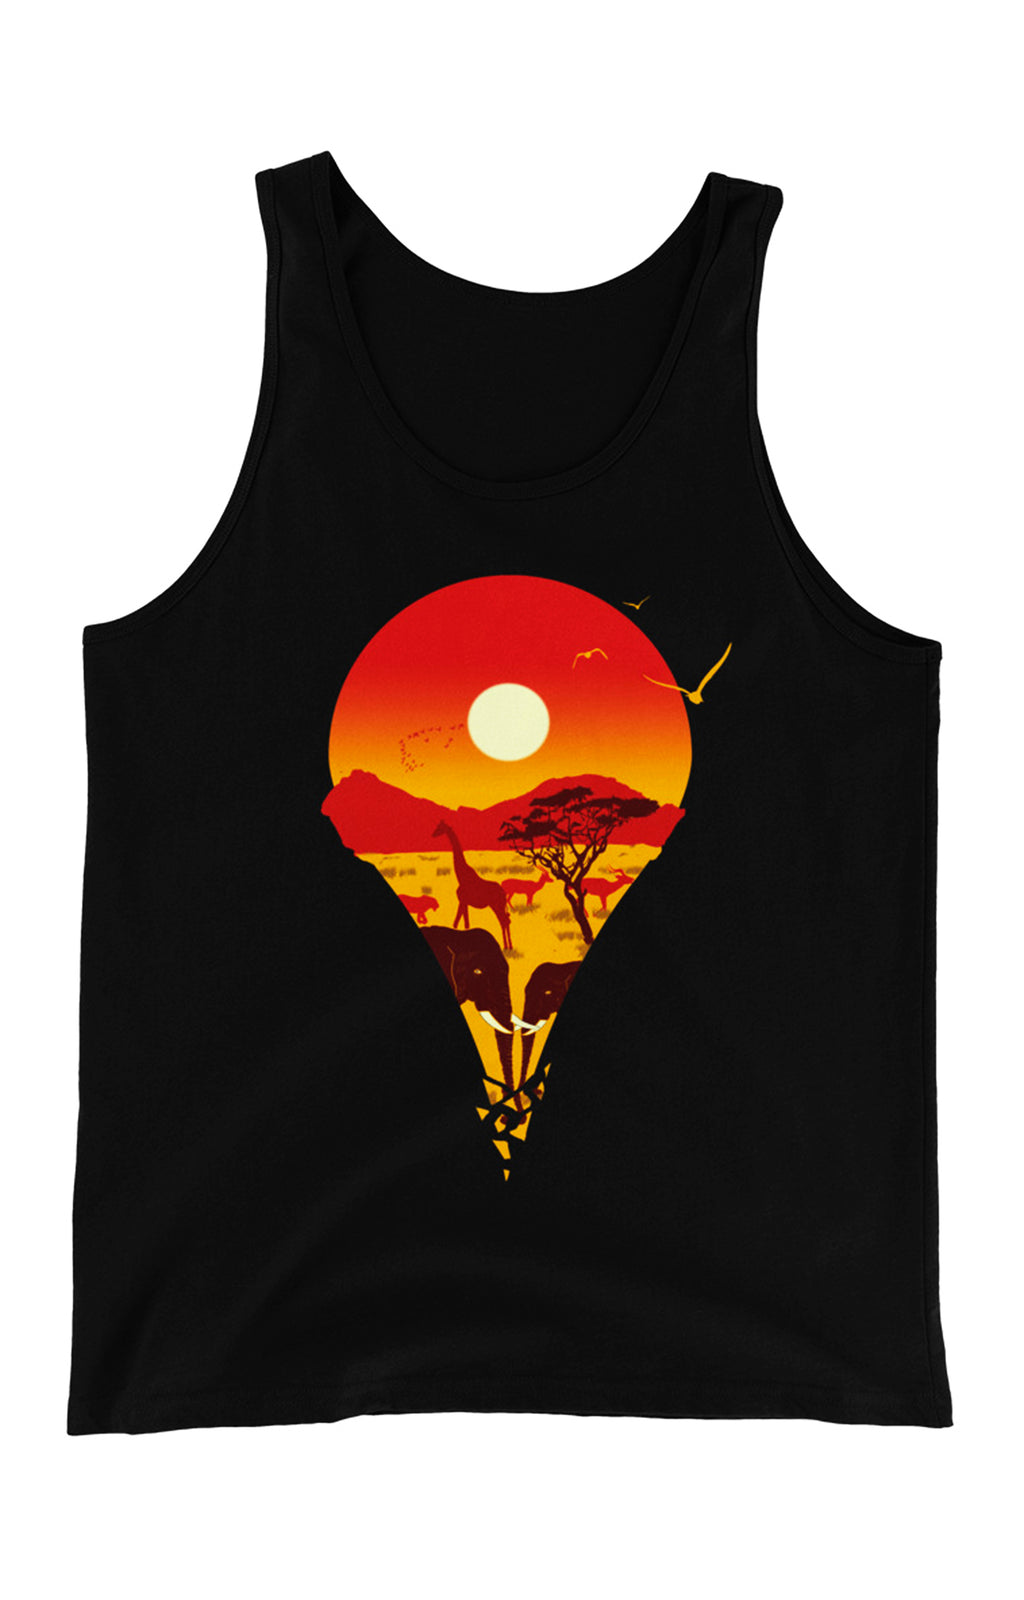 Location Marker Unisex Tank Top (Day)